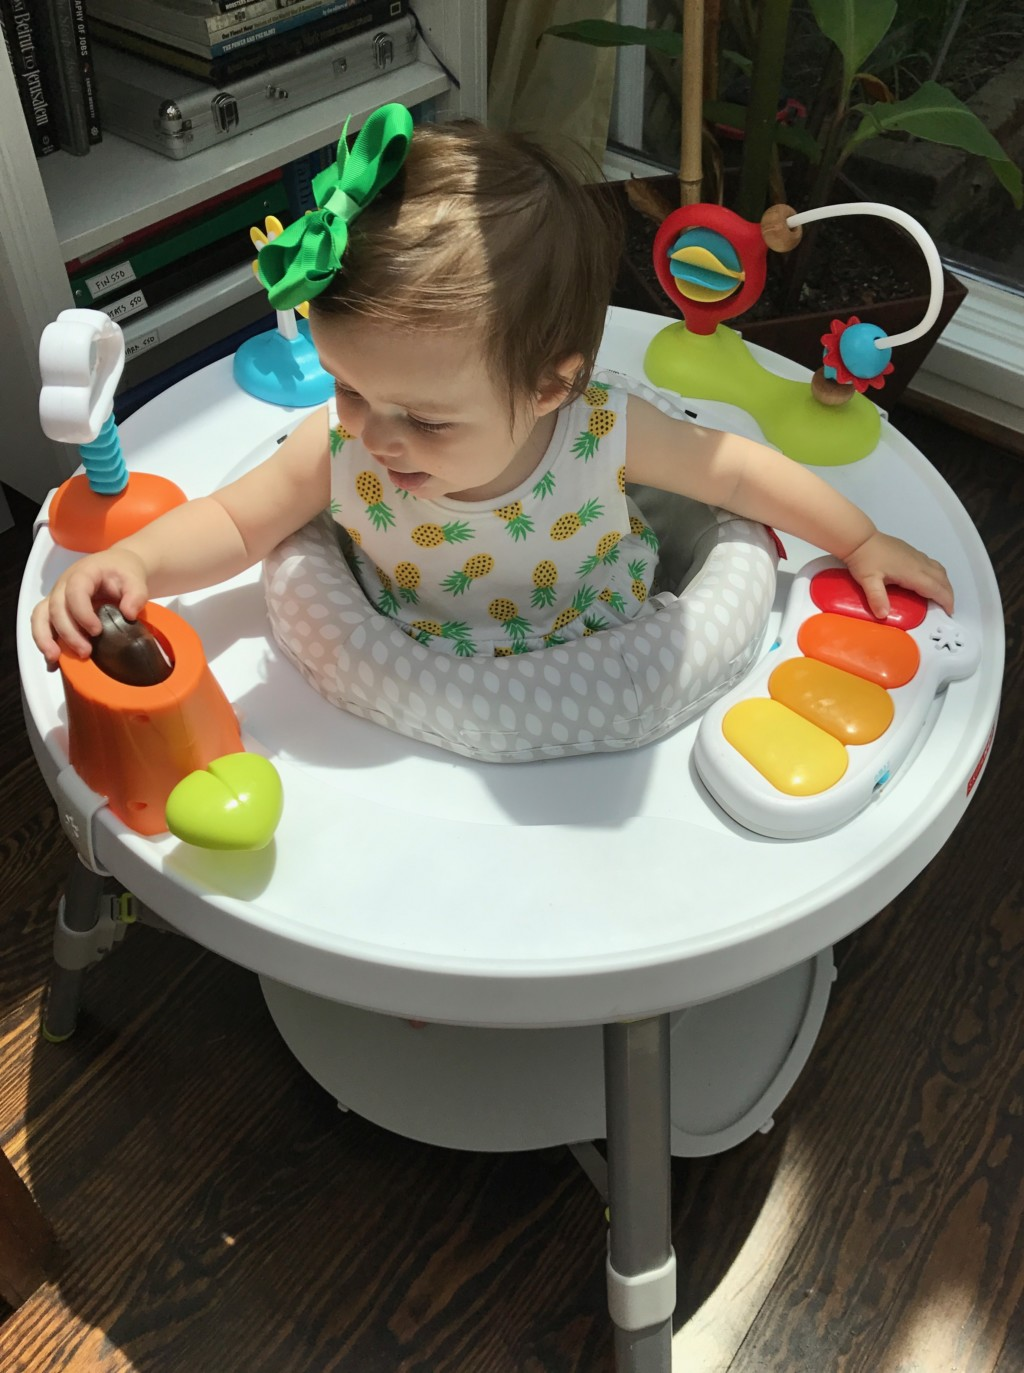 Baby Gear for Small Spaces - Skip Hop Activity Center